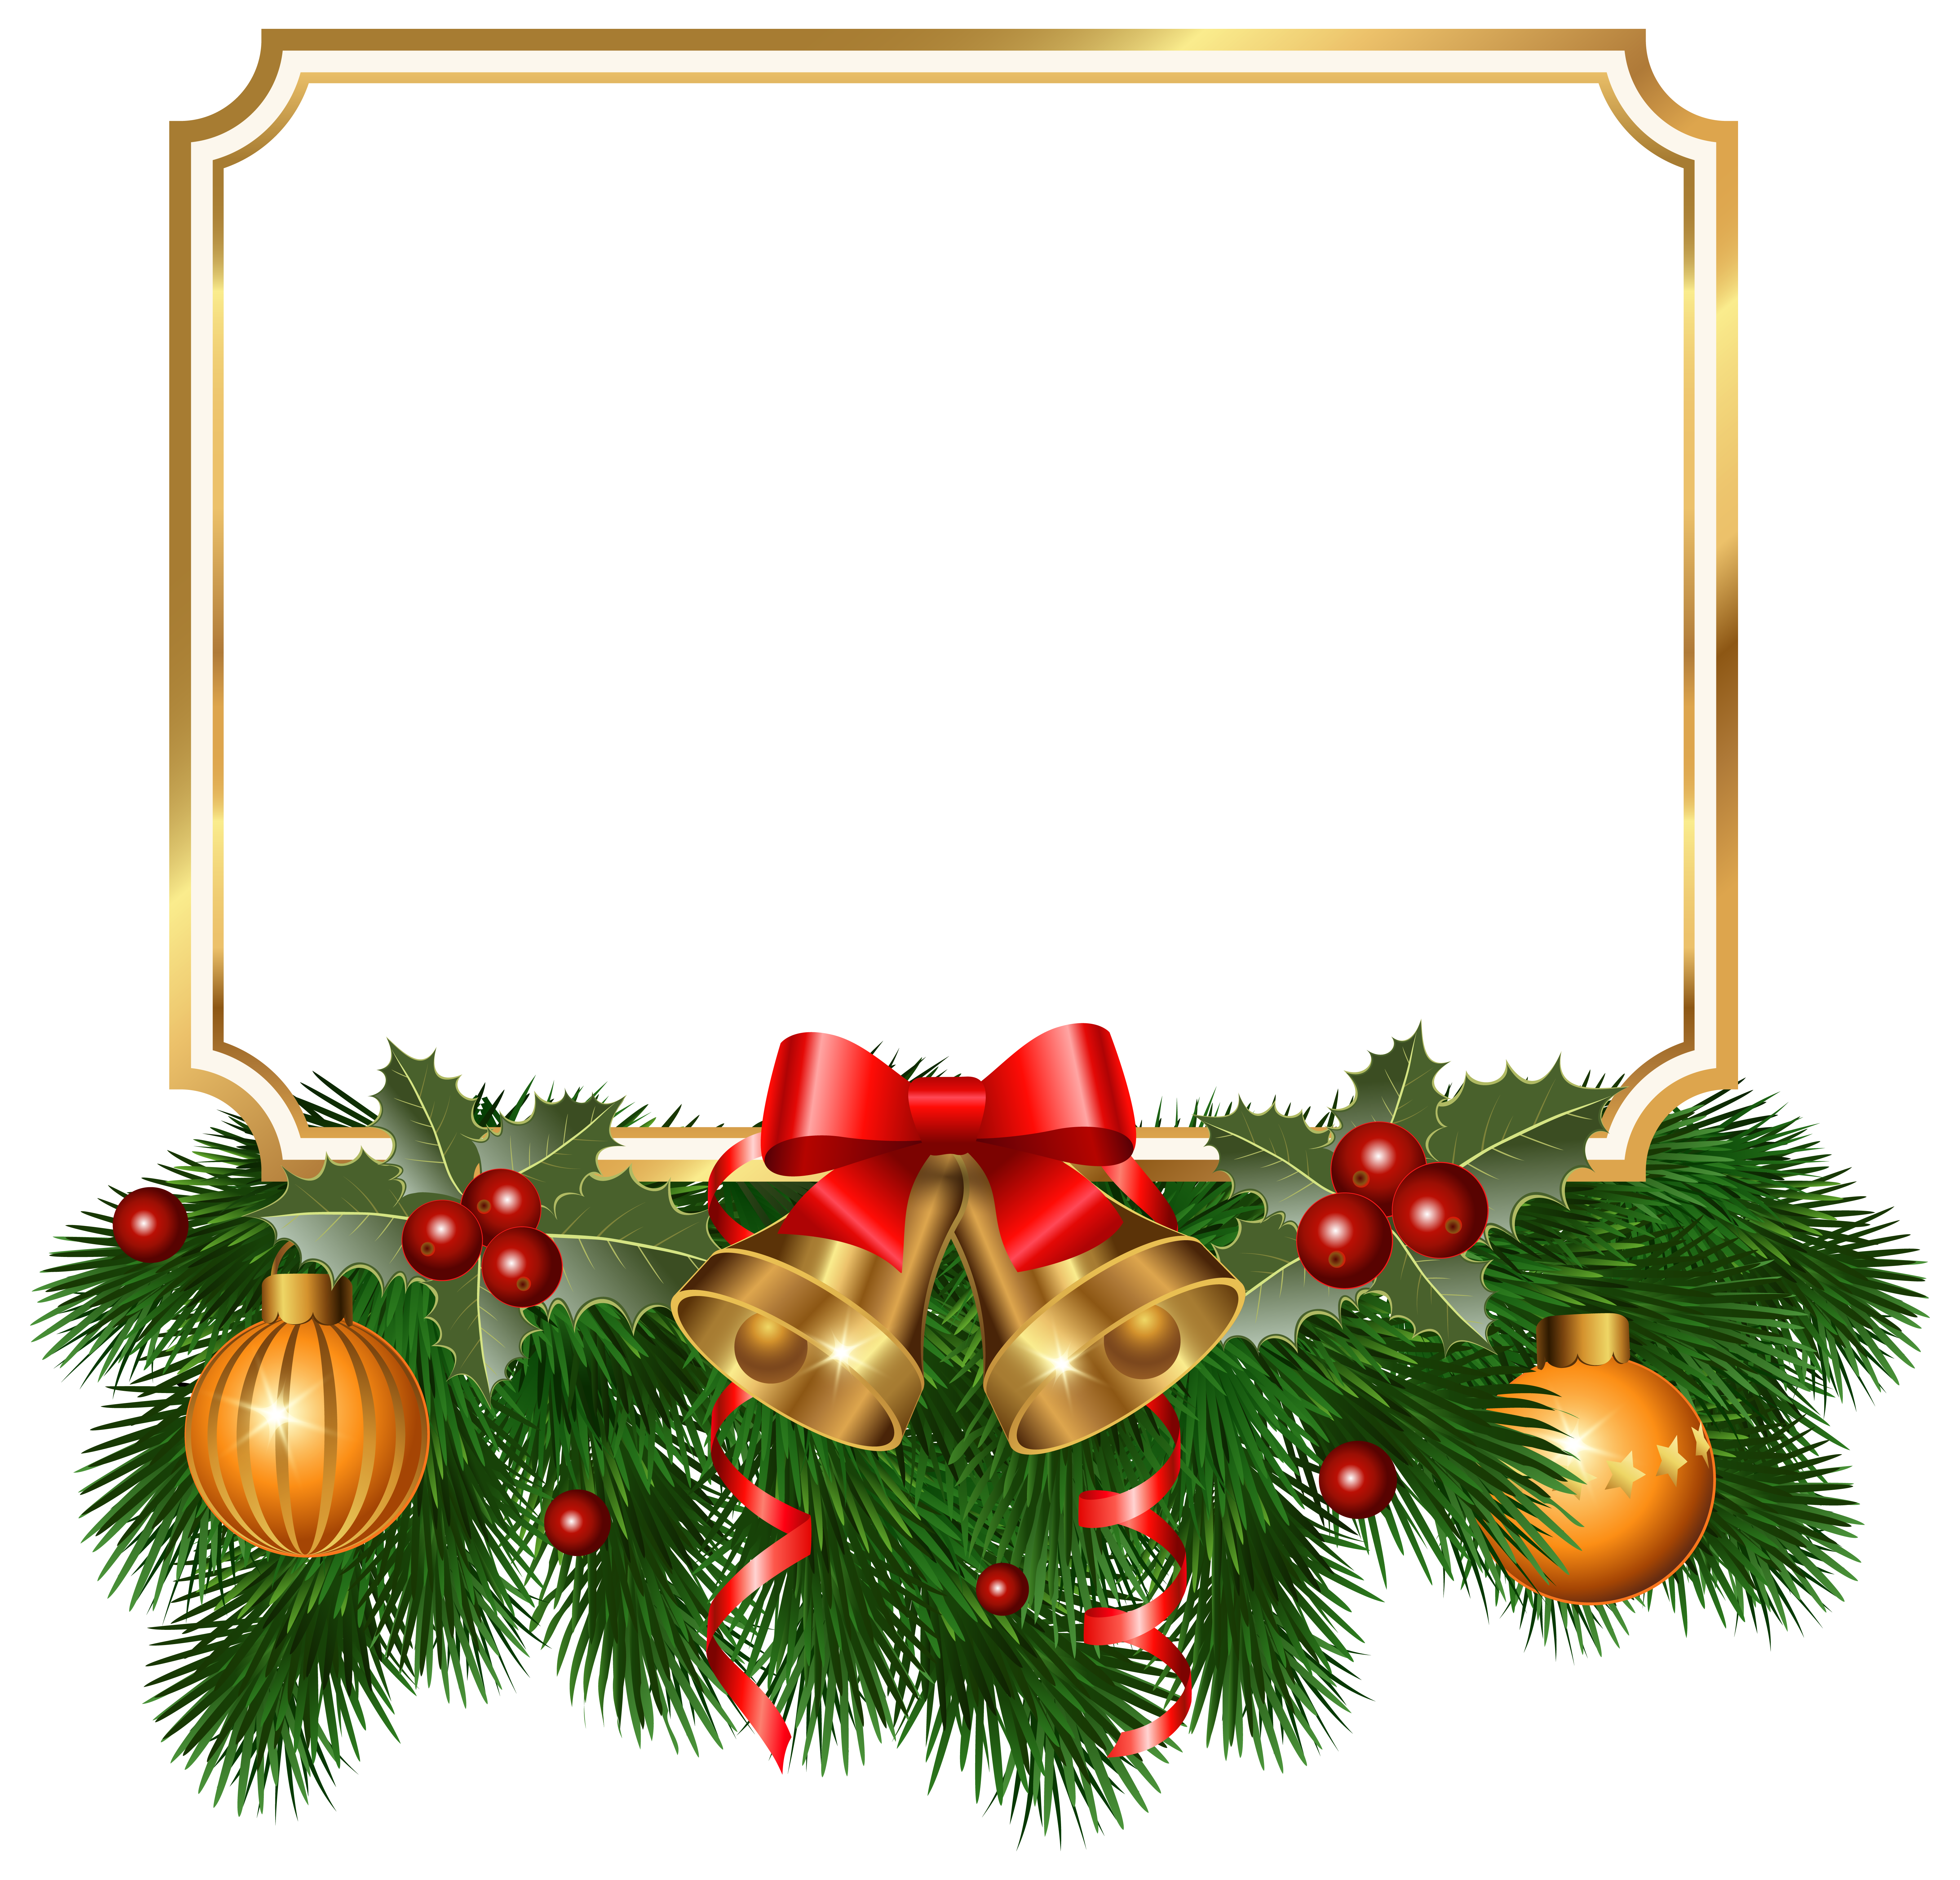 Christmas border clipart picture freeuse download Christmas Golden Border PNG Clipart Image | Gallery Yopriceville ... picture freeuse download